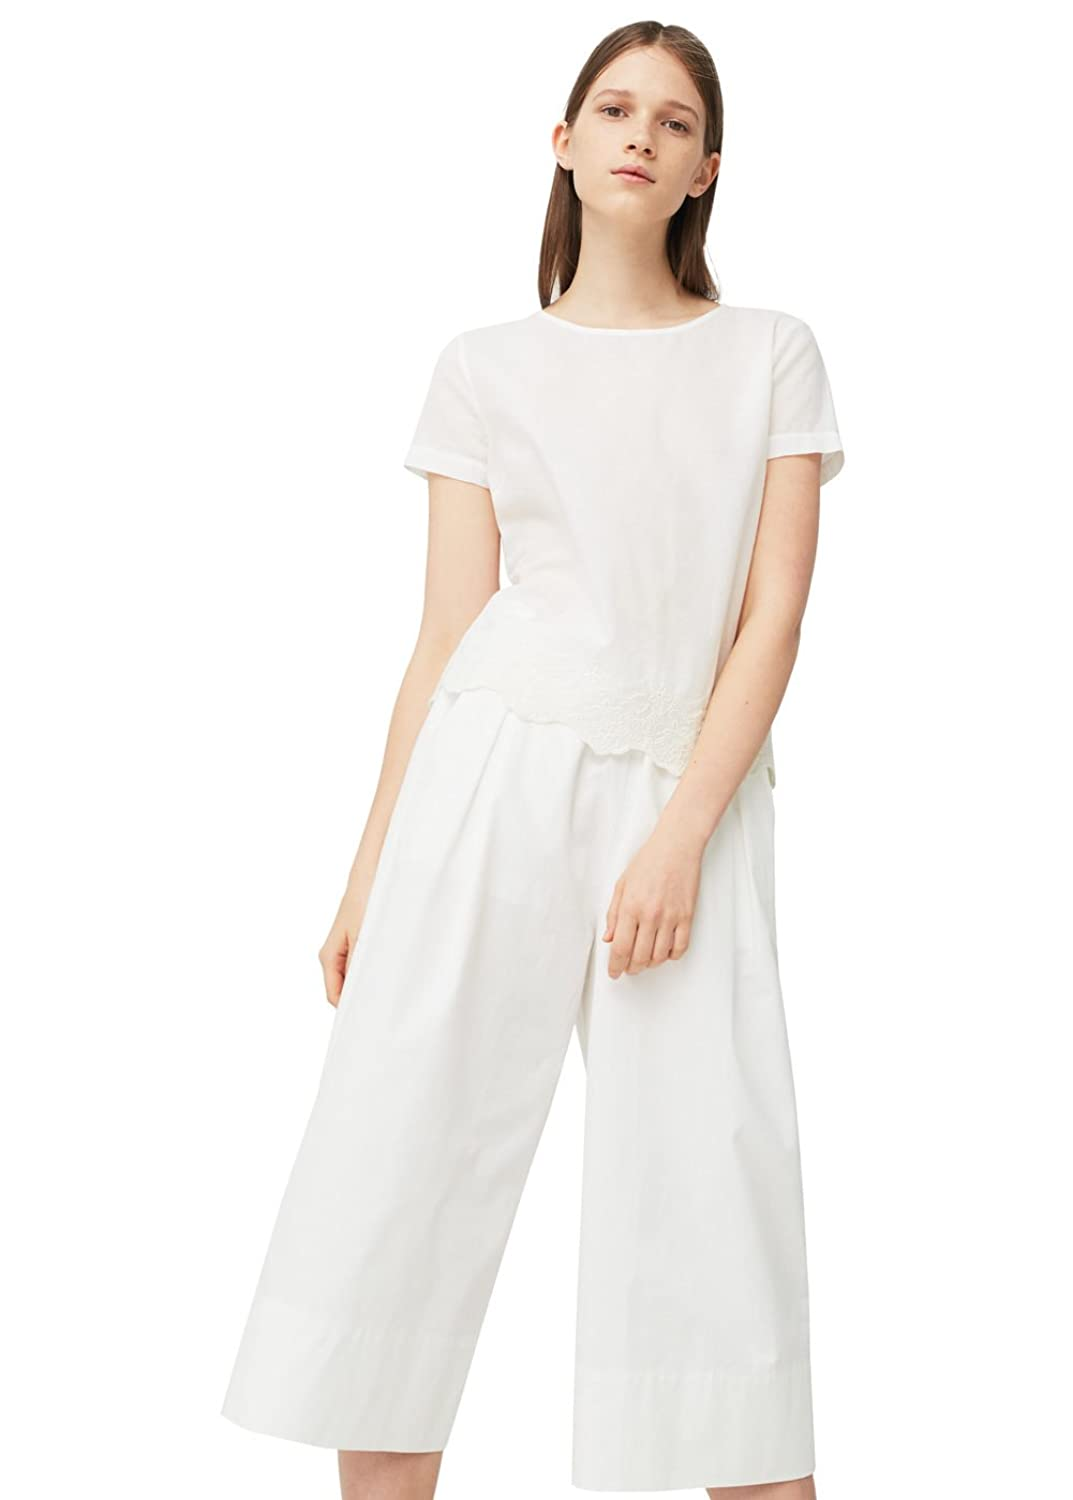 MANGO - Embroidered cotton Shirts Short sleeve blouse - Size:12 - Color:Off White